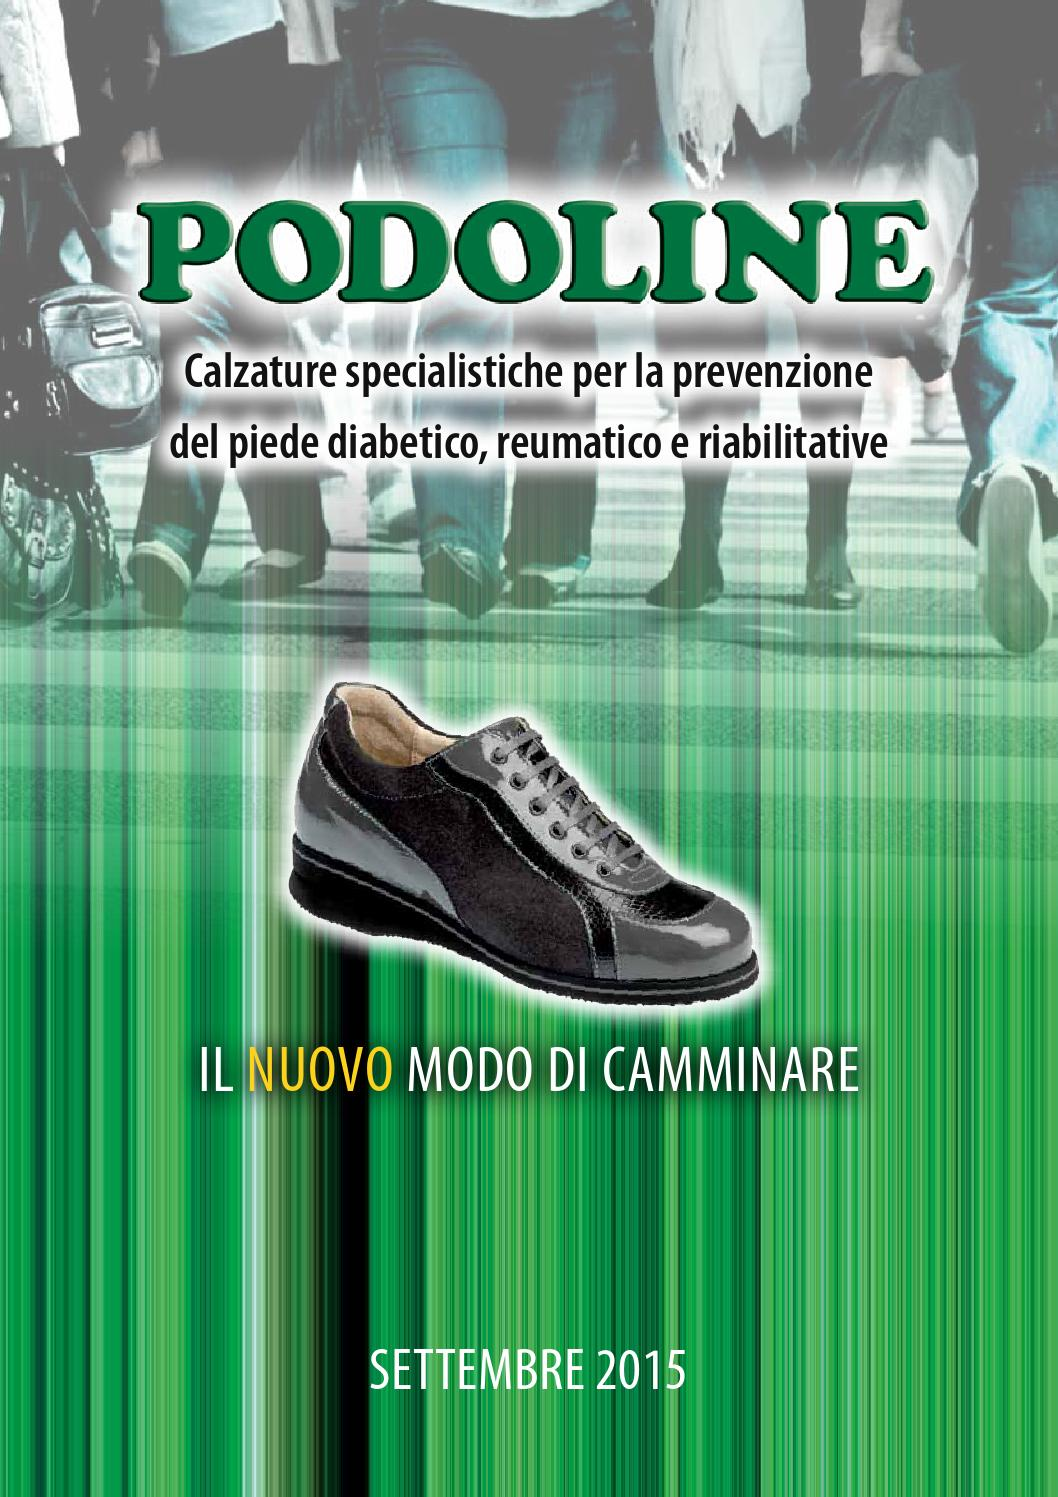 Podoline cat 2015 by NEWSAN issuu